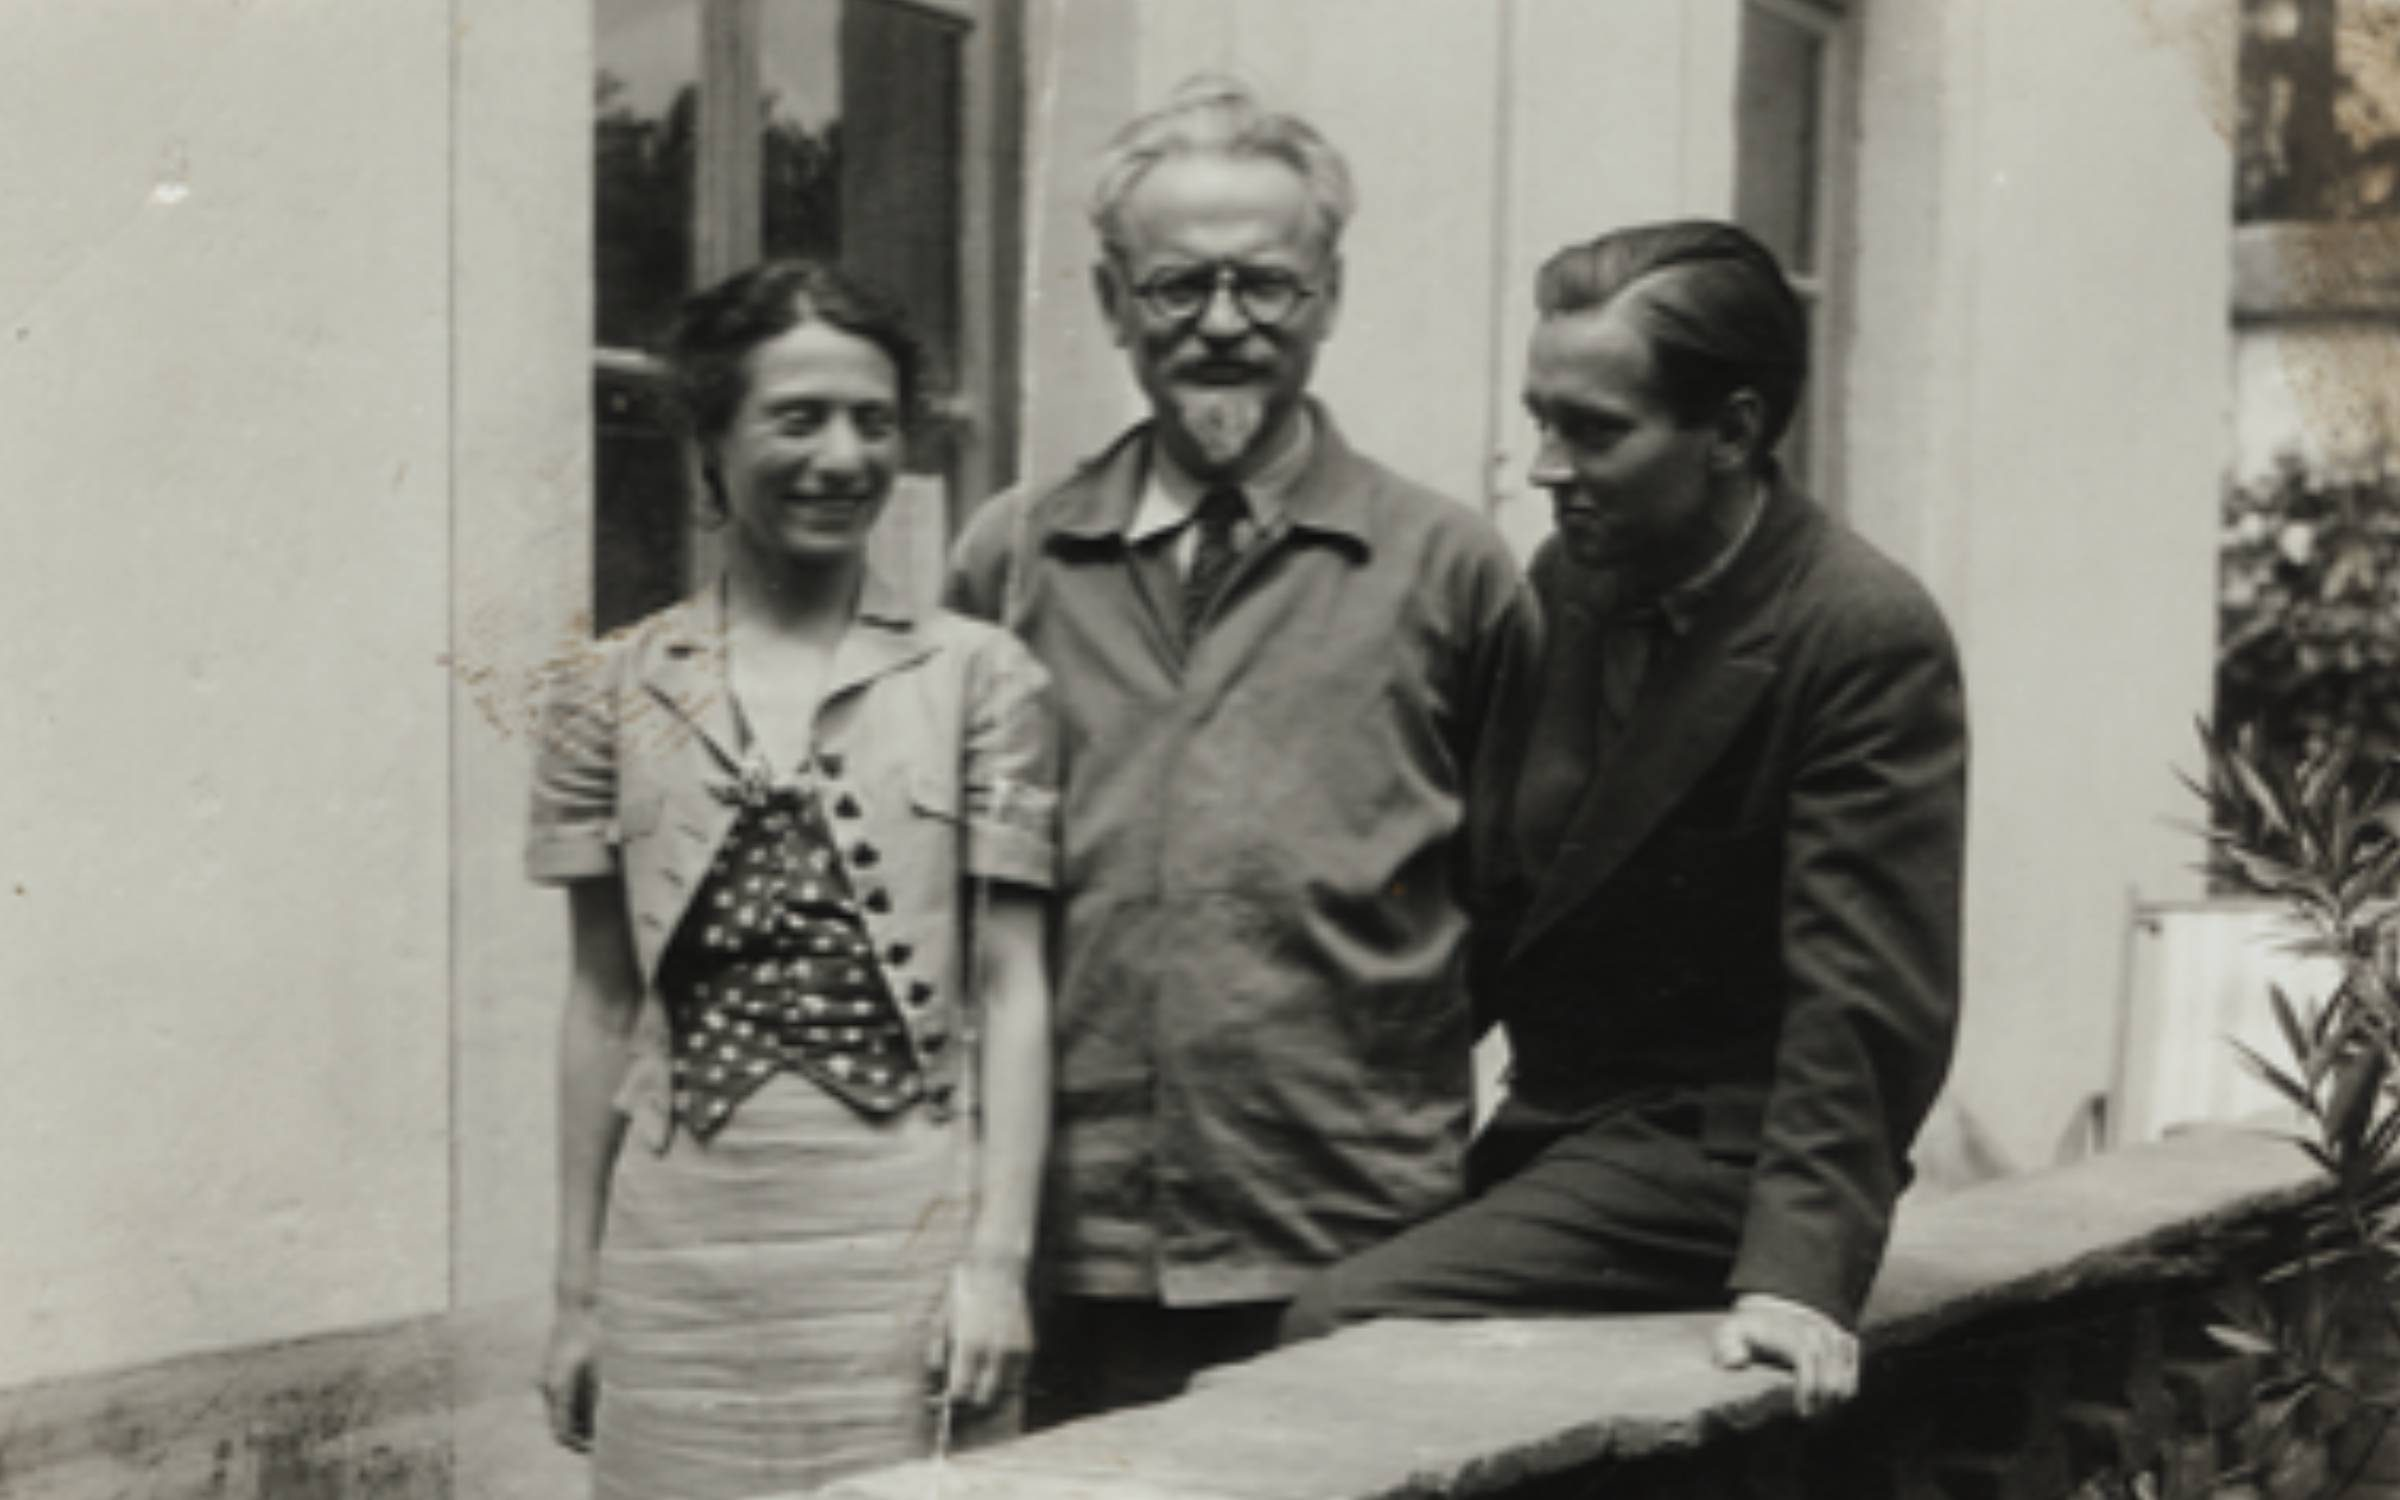 From left to right: Dorothy McDonald (wife of John, née Eisner), Leon Trotsky and John McDonald in Coyoacan, Mexico, in the 1930s. McDonald was recruited to help defend Trotsky from charges made at Stalin's show trials. Credit: General Collection, Beinecke Rare Book & Manuscript Library, Yale University